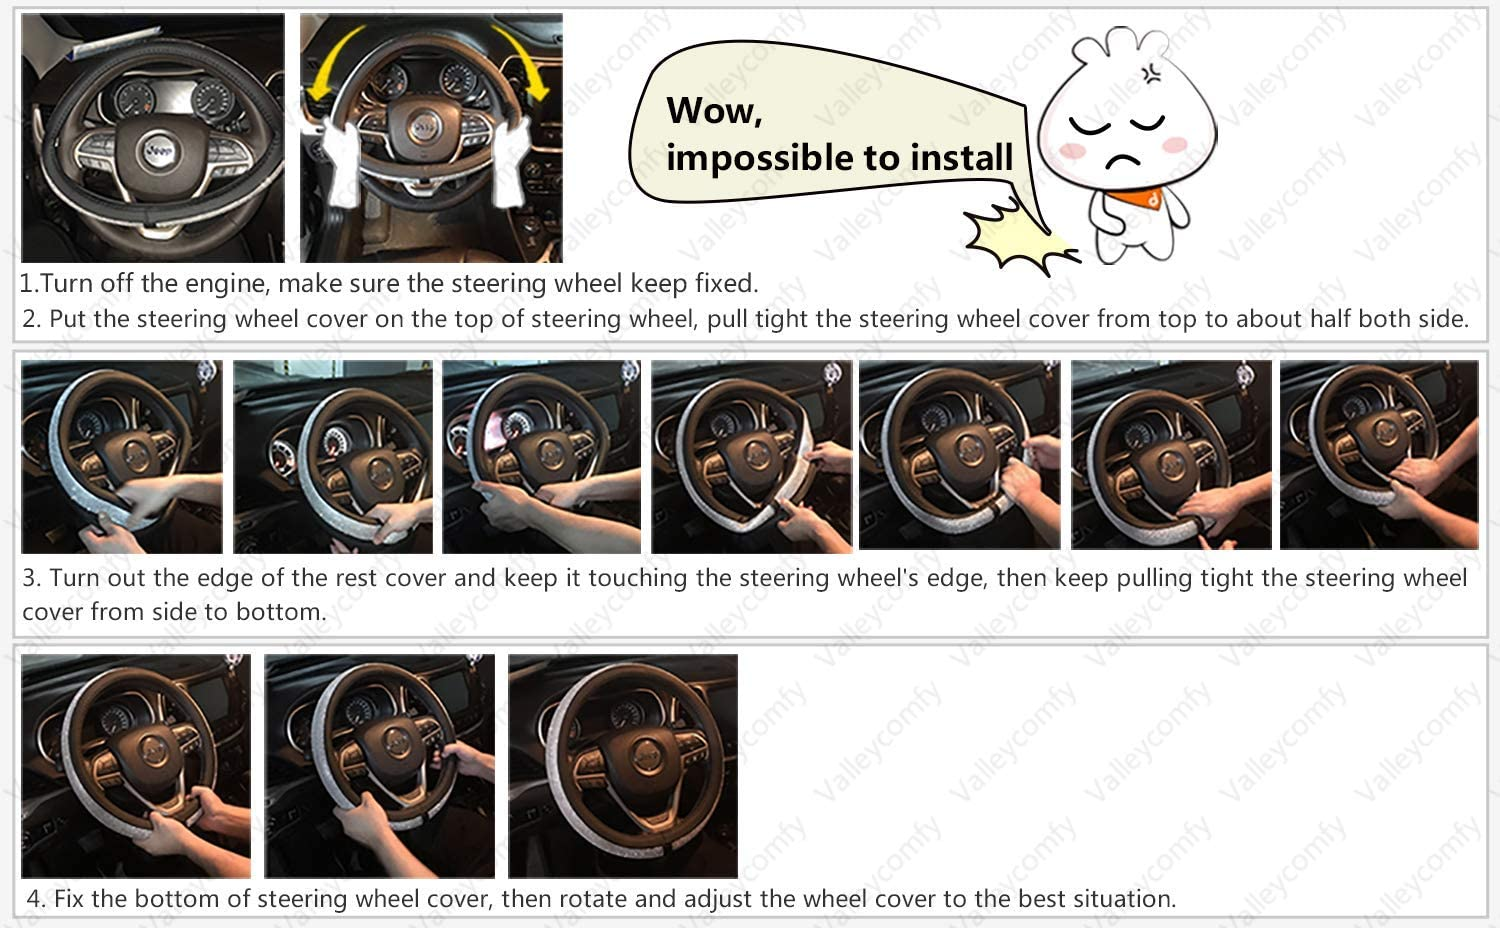 Valleycomfy Steering Wheel Cover with Microfiber Leather for Car Truck SUV 15 inch no Odour Black